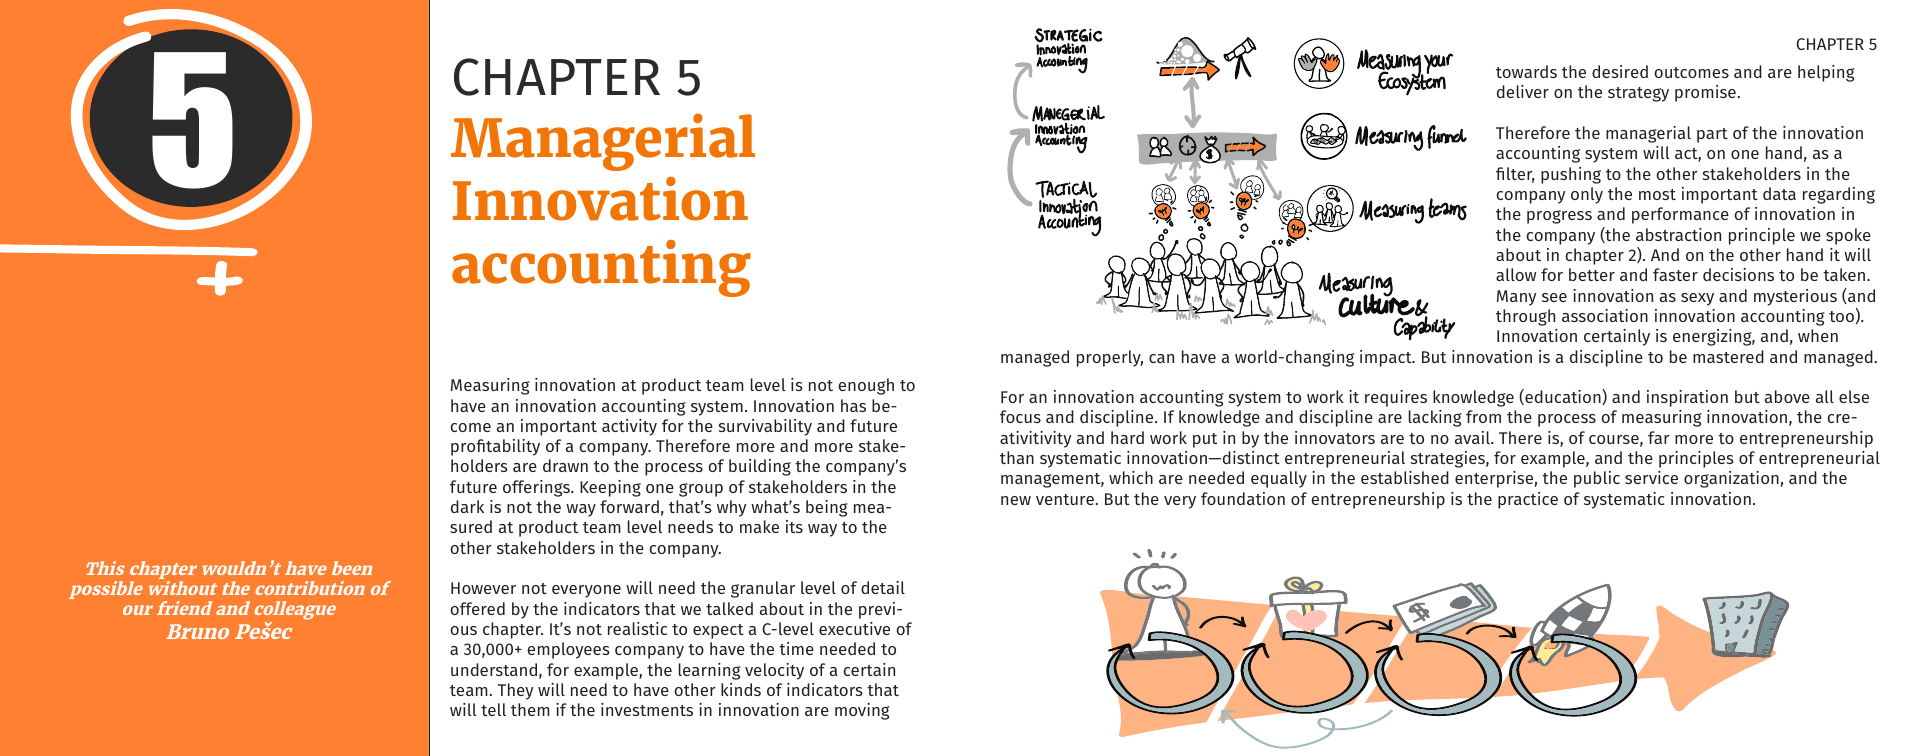 Managerial Innovation Accounting chapter preview